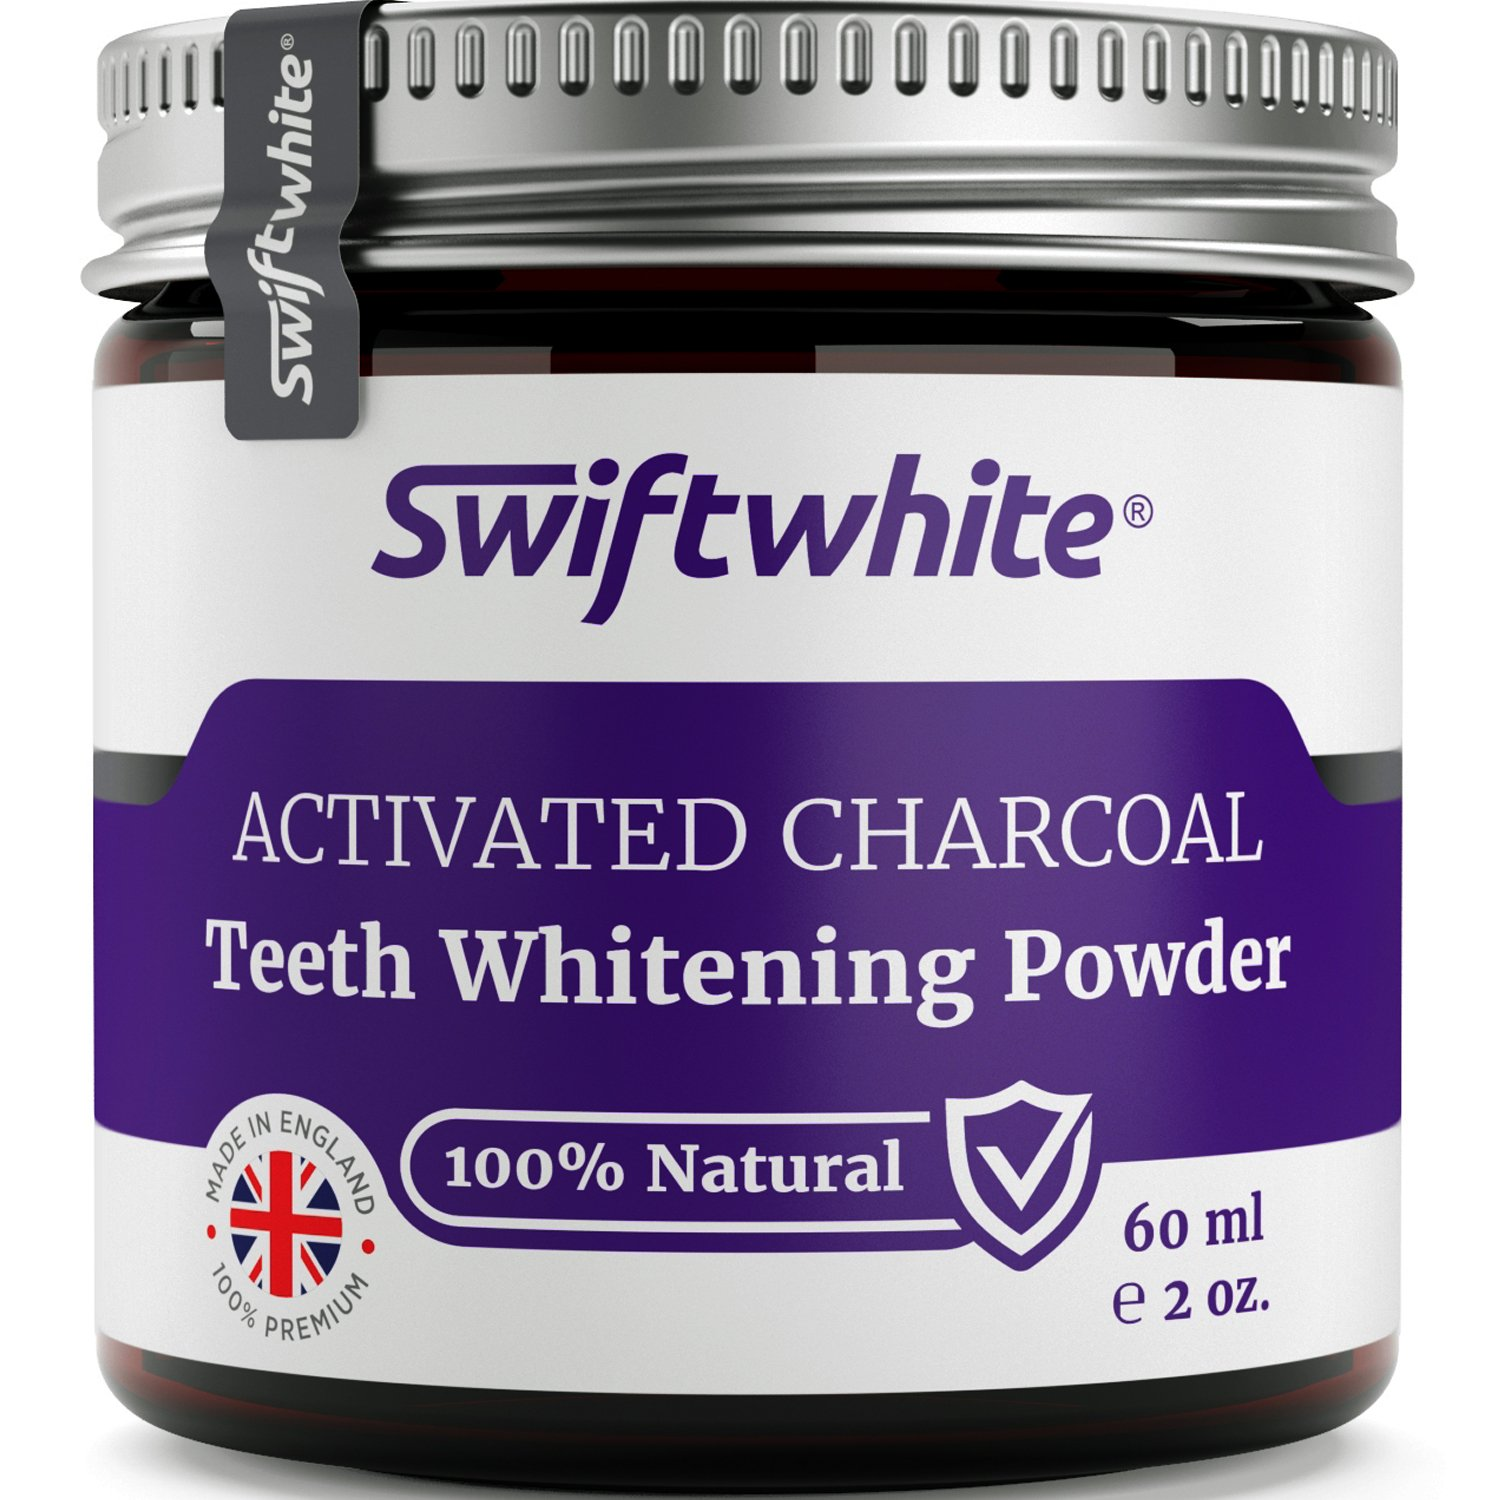 activated charcoal teeth whitening powder 60ml by swiftwhite 100